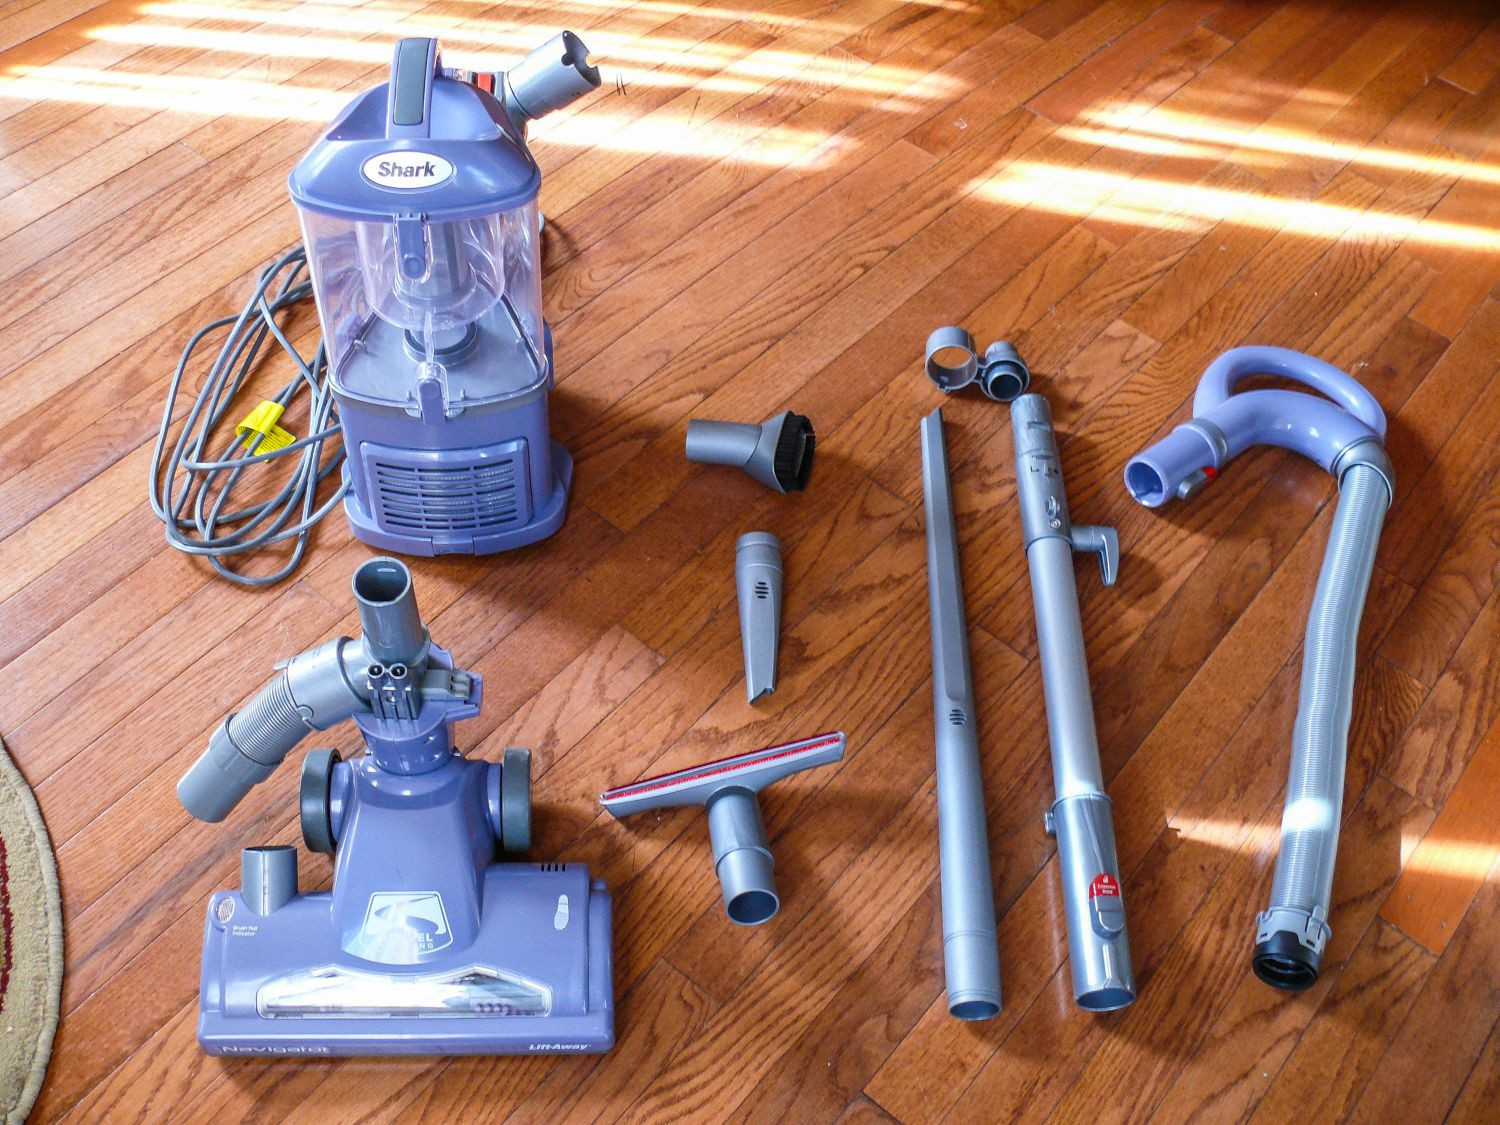 kirby hardwood floor care kit of the 10 best vacuum cleaners to buy in 2018 in 4062974 2 1 5bbf719946e0fb0058db2790